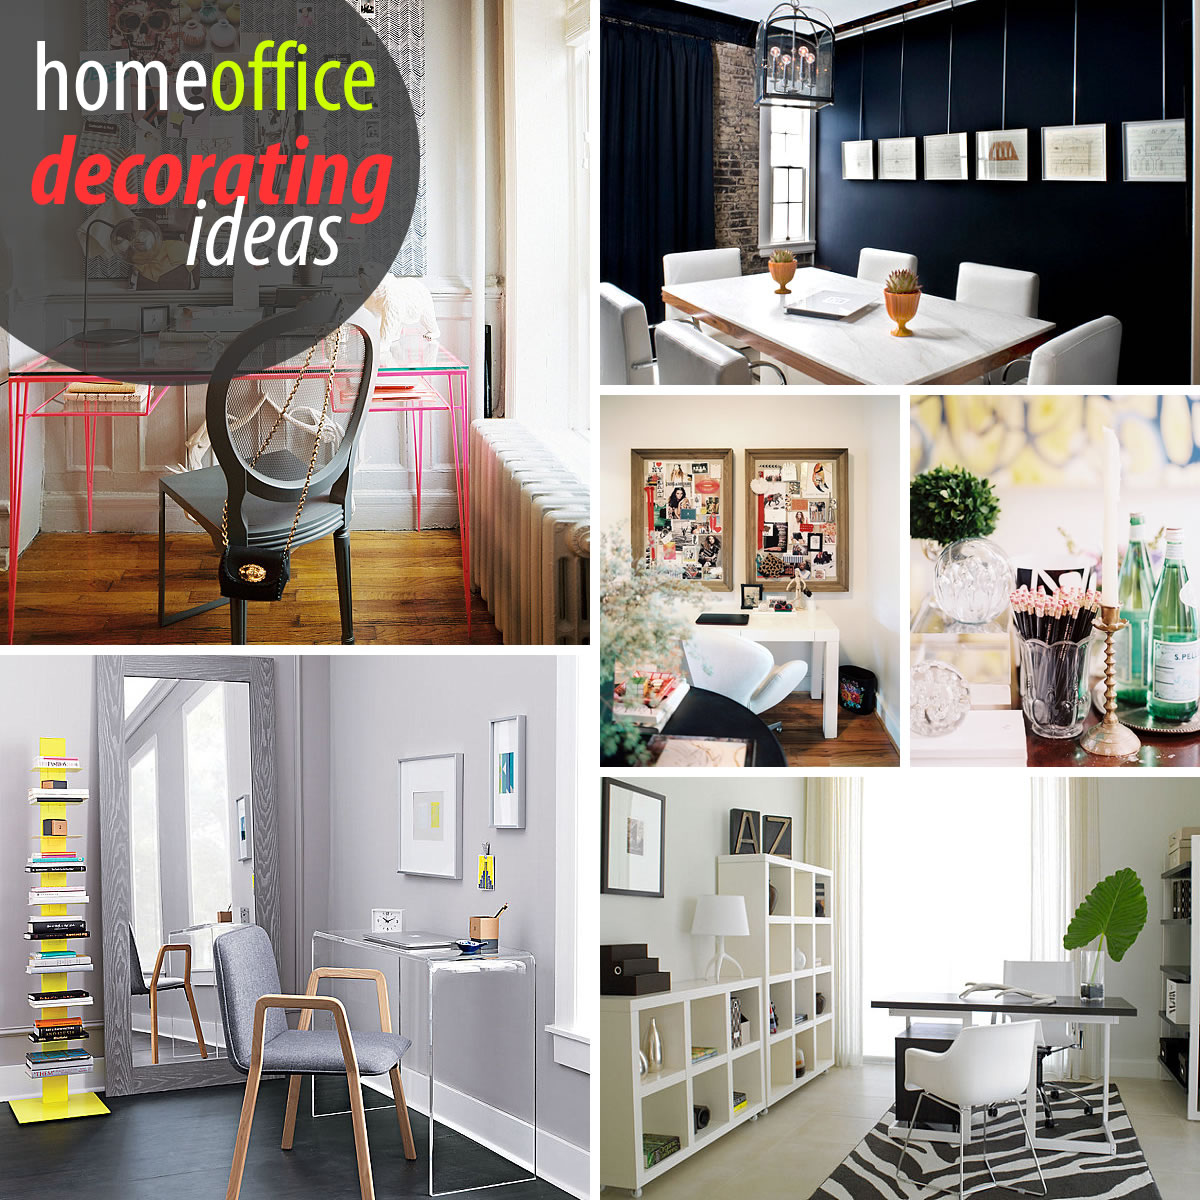 creative home office decorating ideas - Decorating Homes Ideas